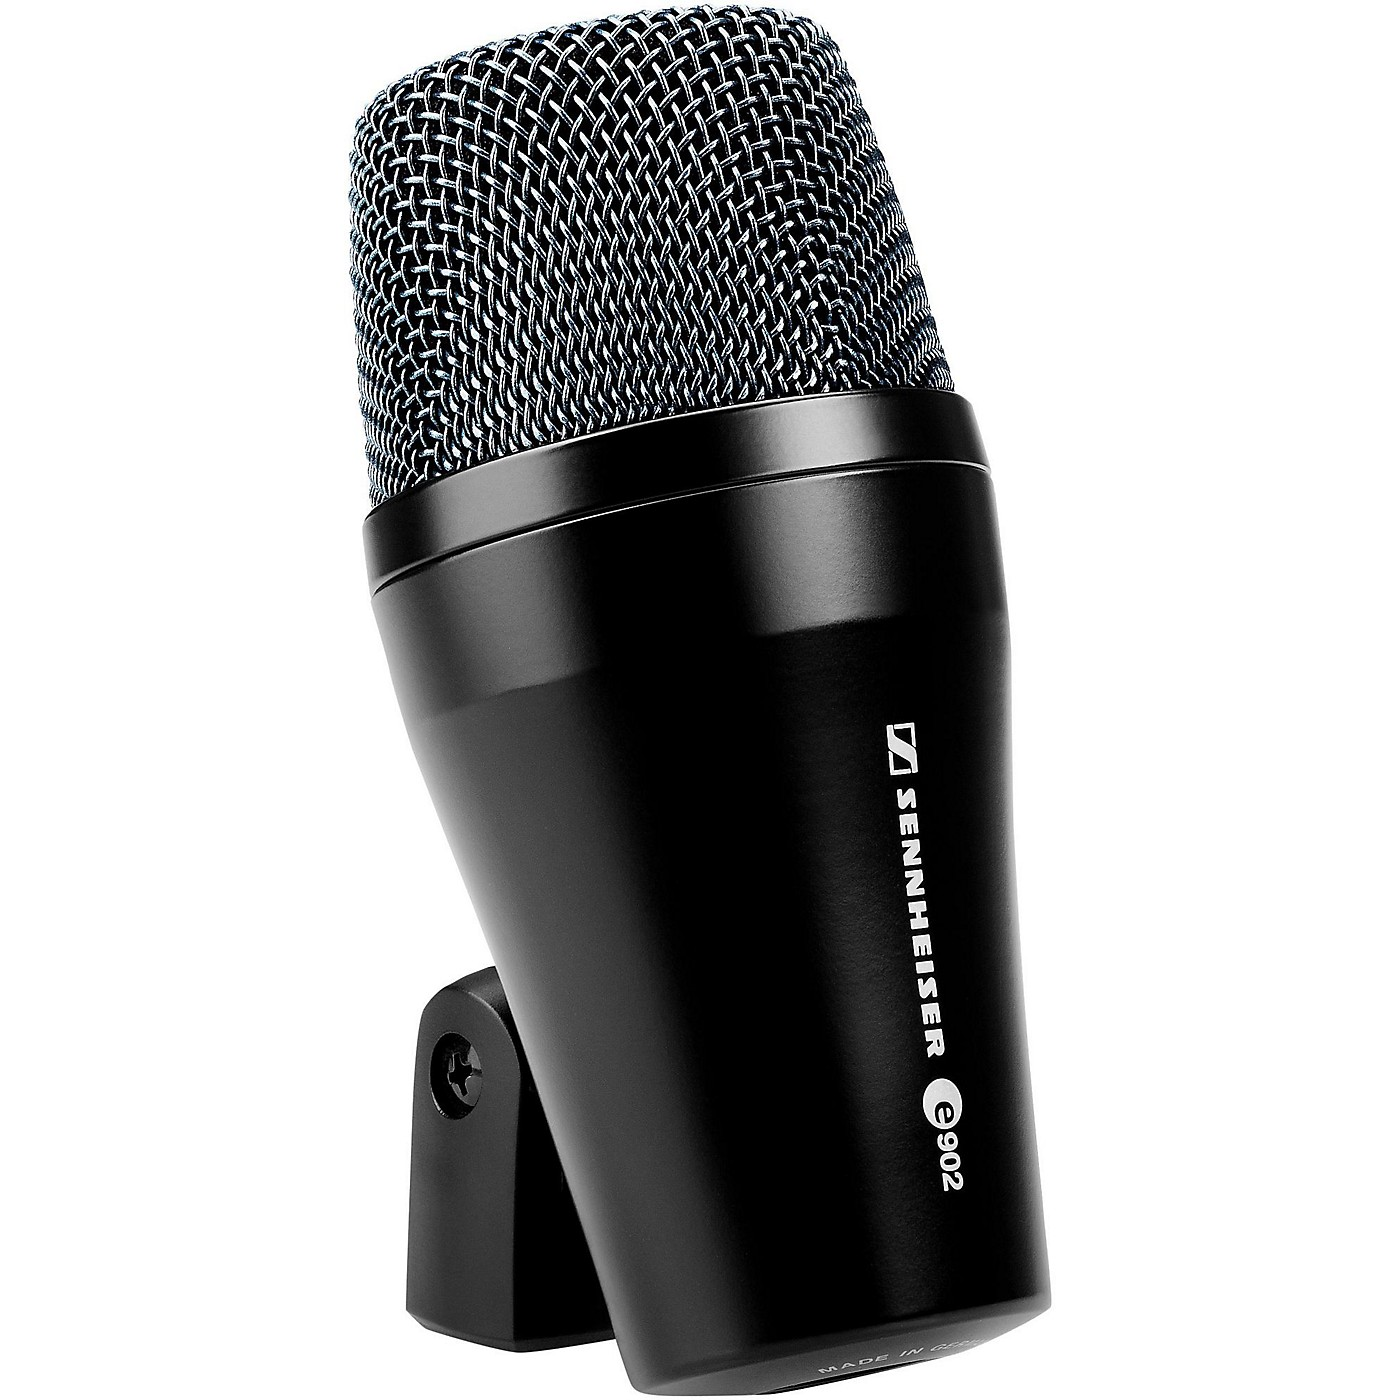 Sennheiser evolution e 902 Dynamic Kick Drum Microphone thumbnail